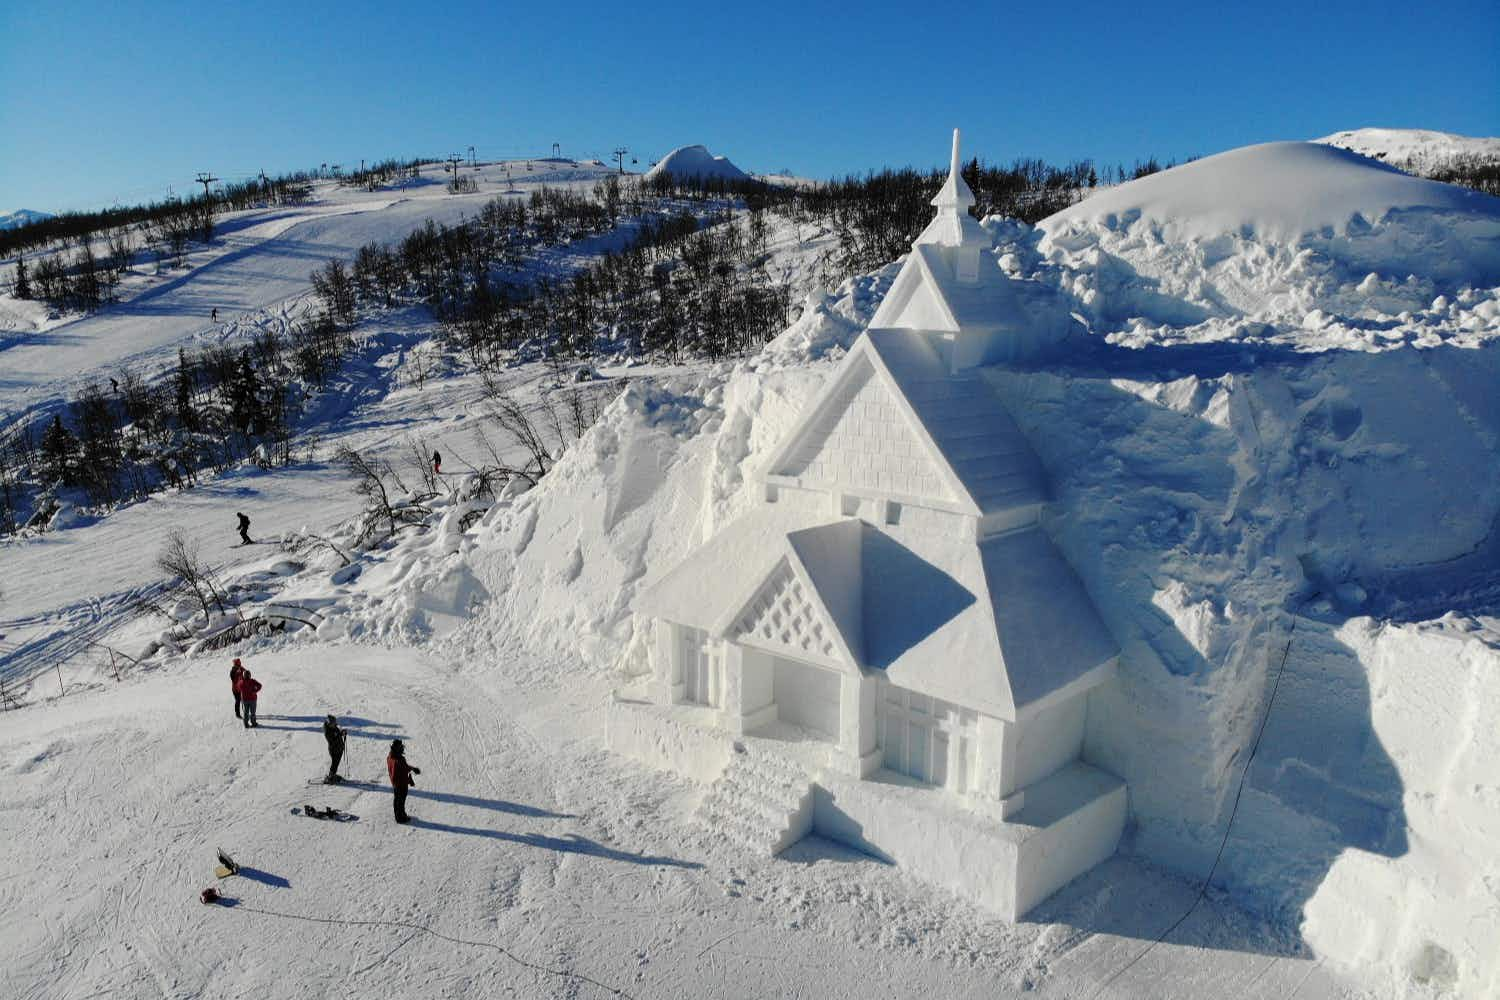 Chinese artists have built a church made of snow on a ski slope in Norway